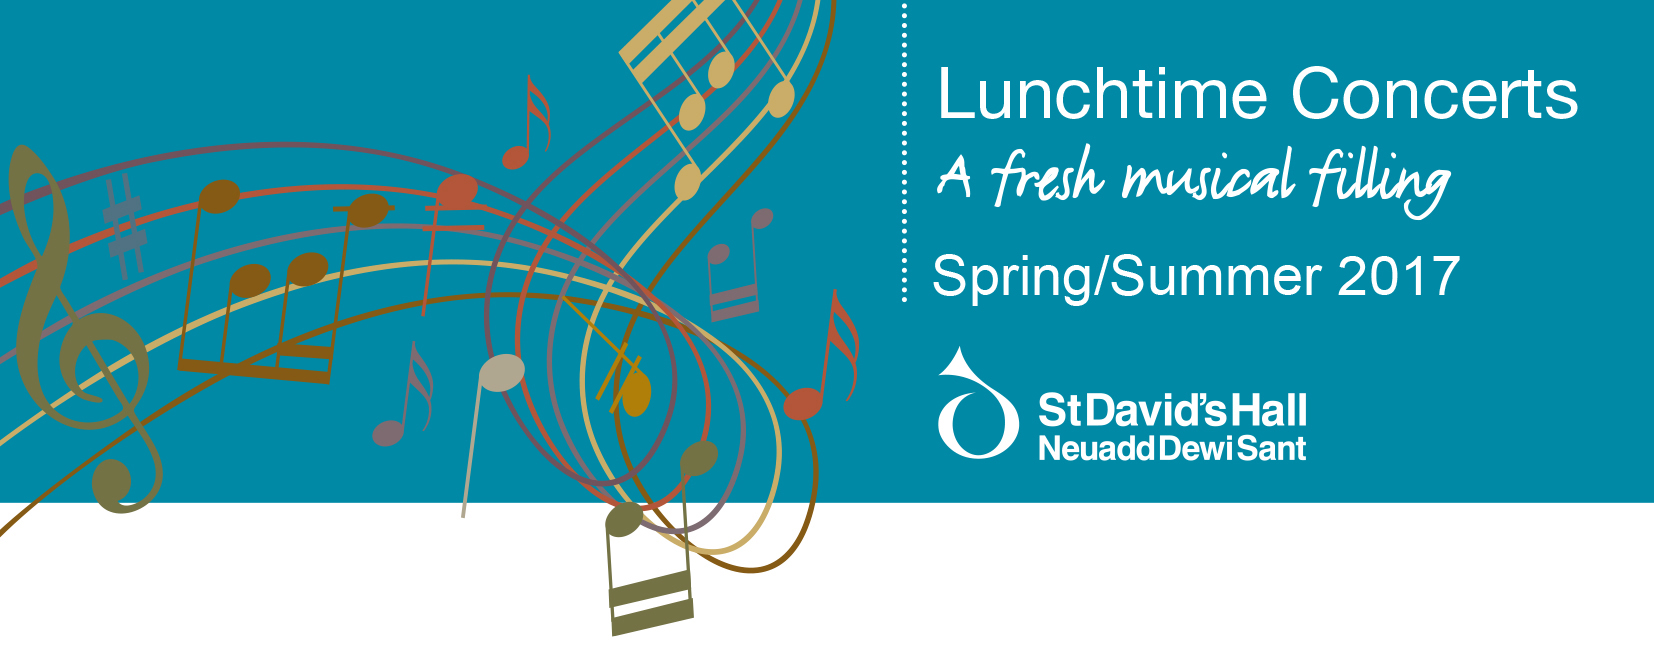 Lunchtime Concerts - Spring & Summer 2017 Season Now On Sale!